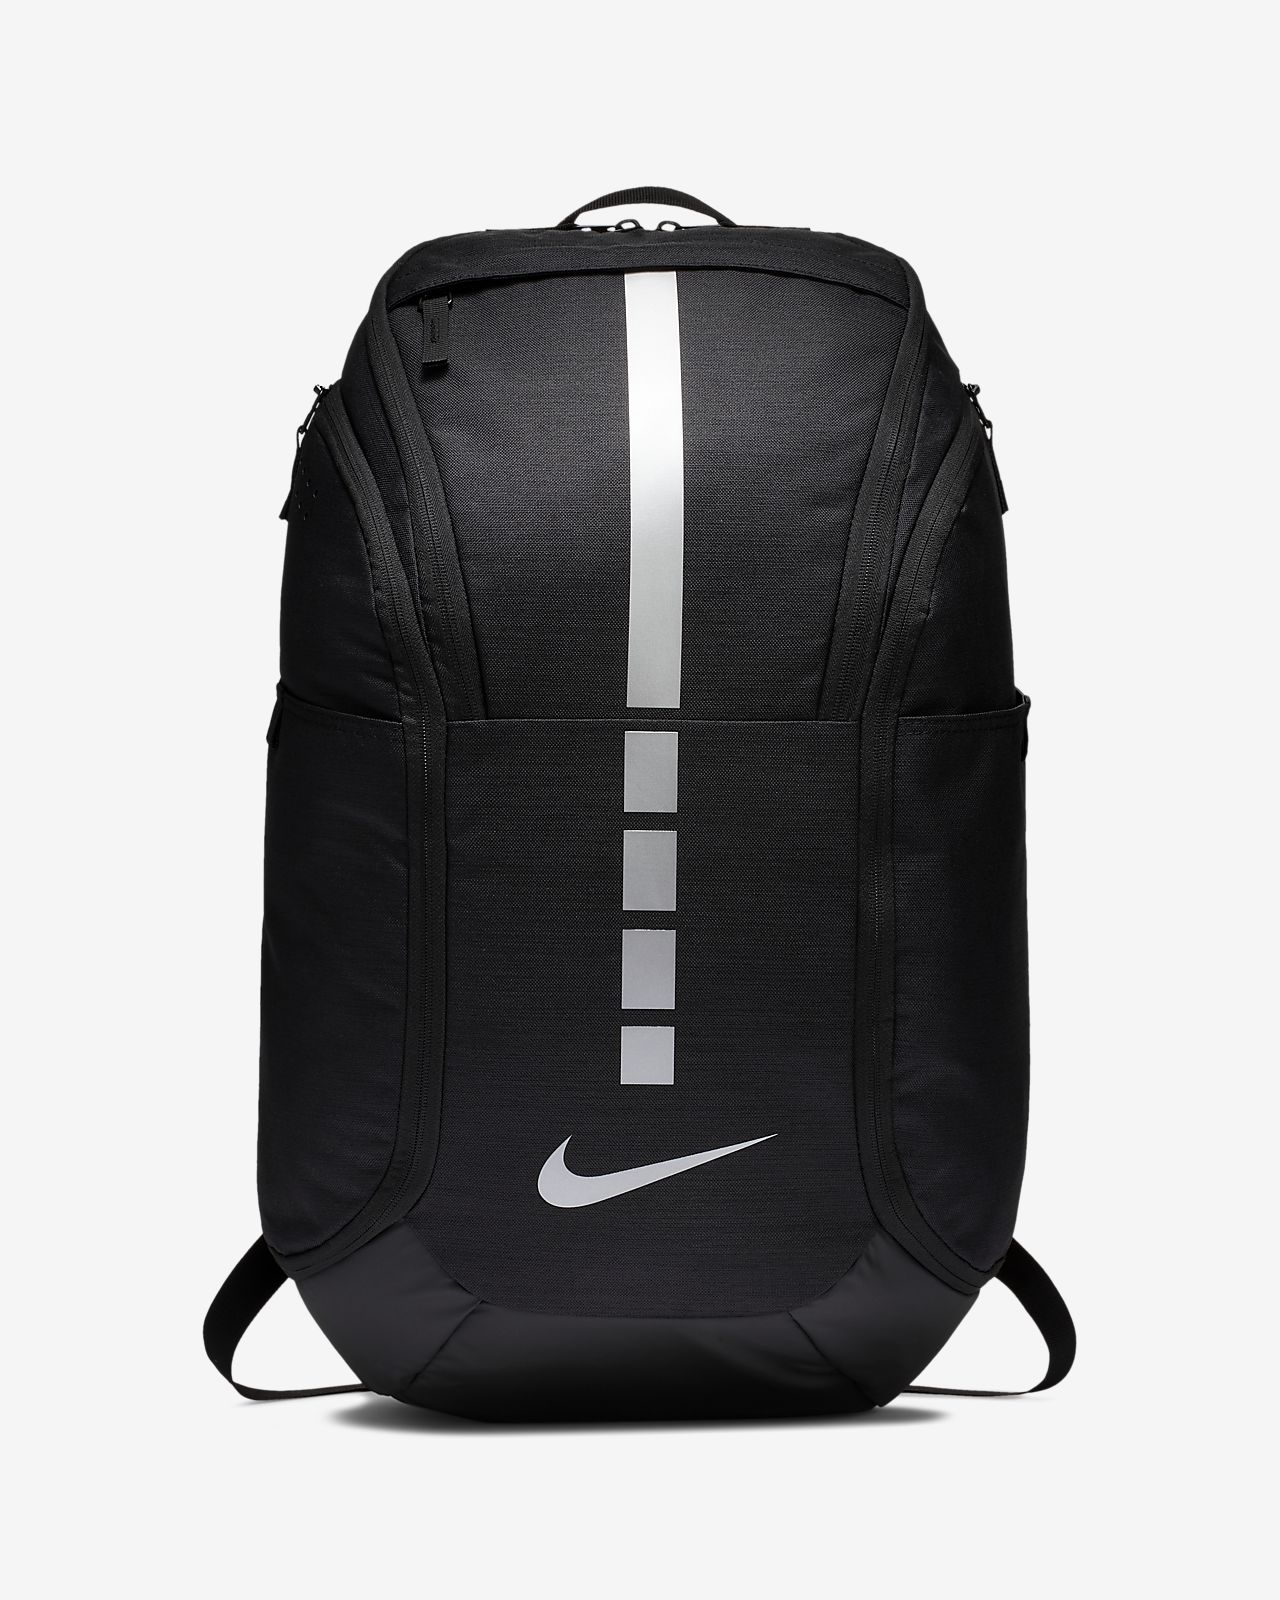 11d2ded77646 Nike Hoops Elite Pro Basketball Backpack. Nike.com AU